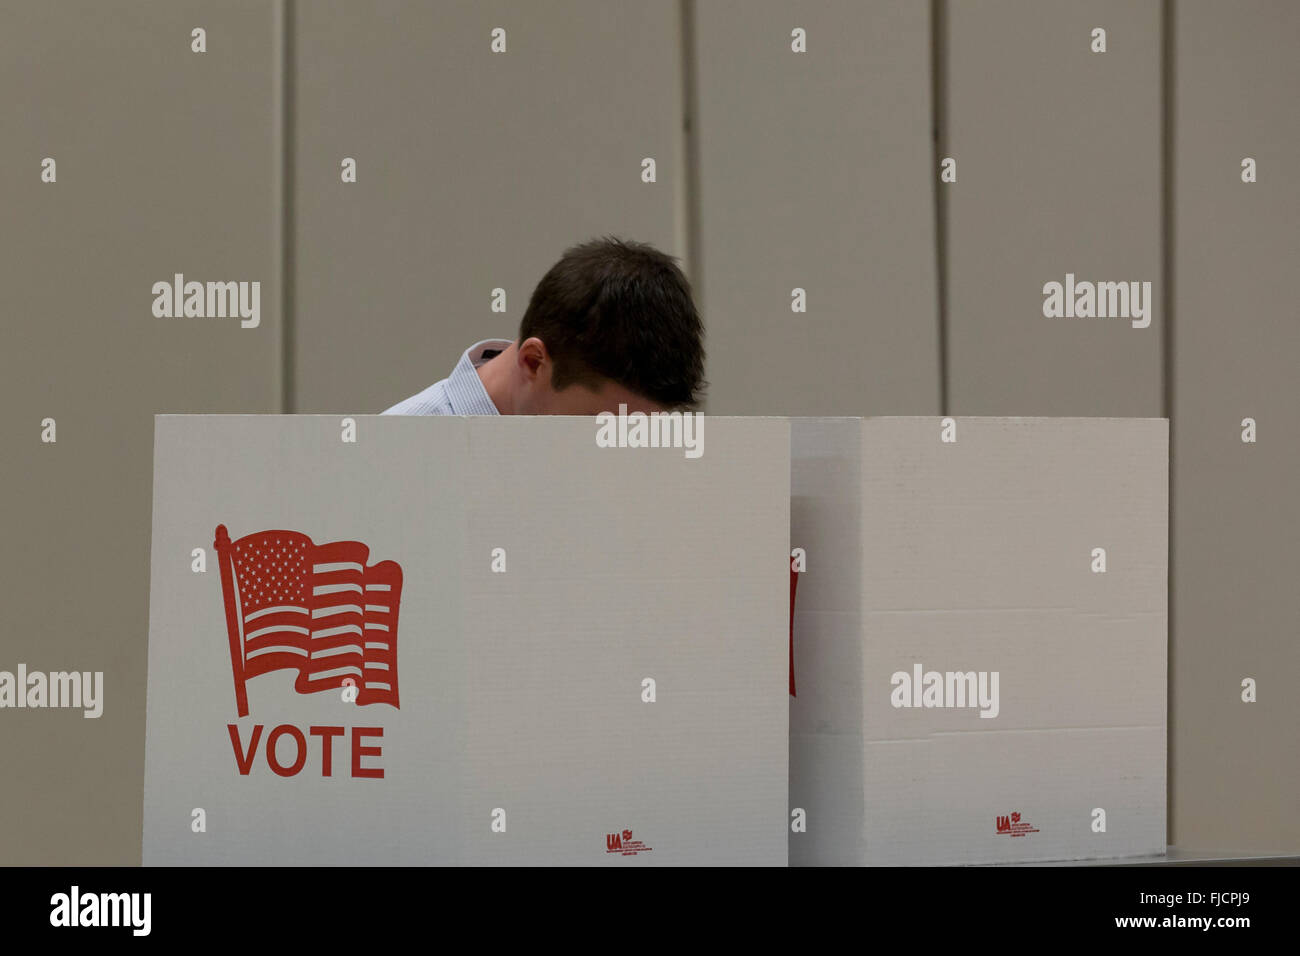 Arlington, Virginia, USA. 1st March, 2016. Virginians cast their votes in a pooling place for the US presidential - Stock Image